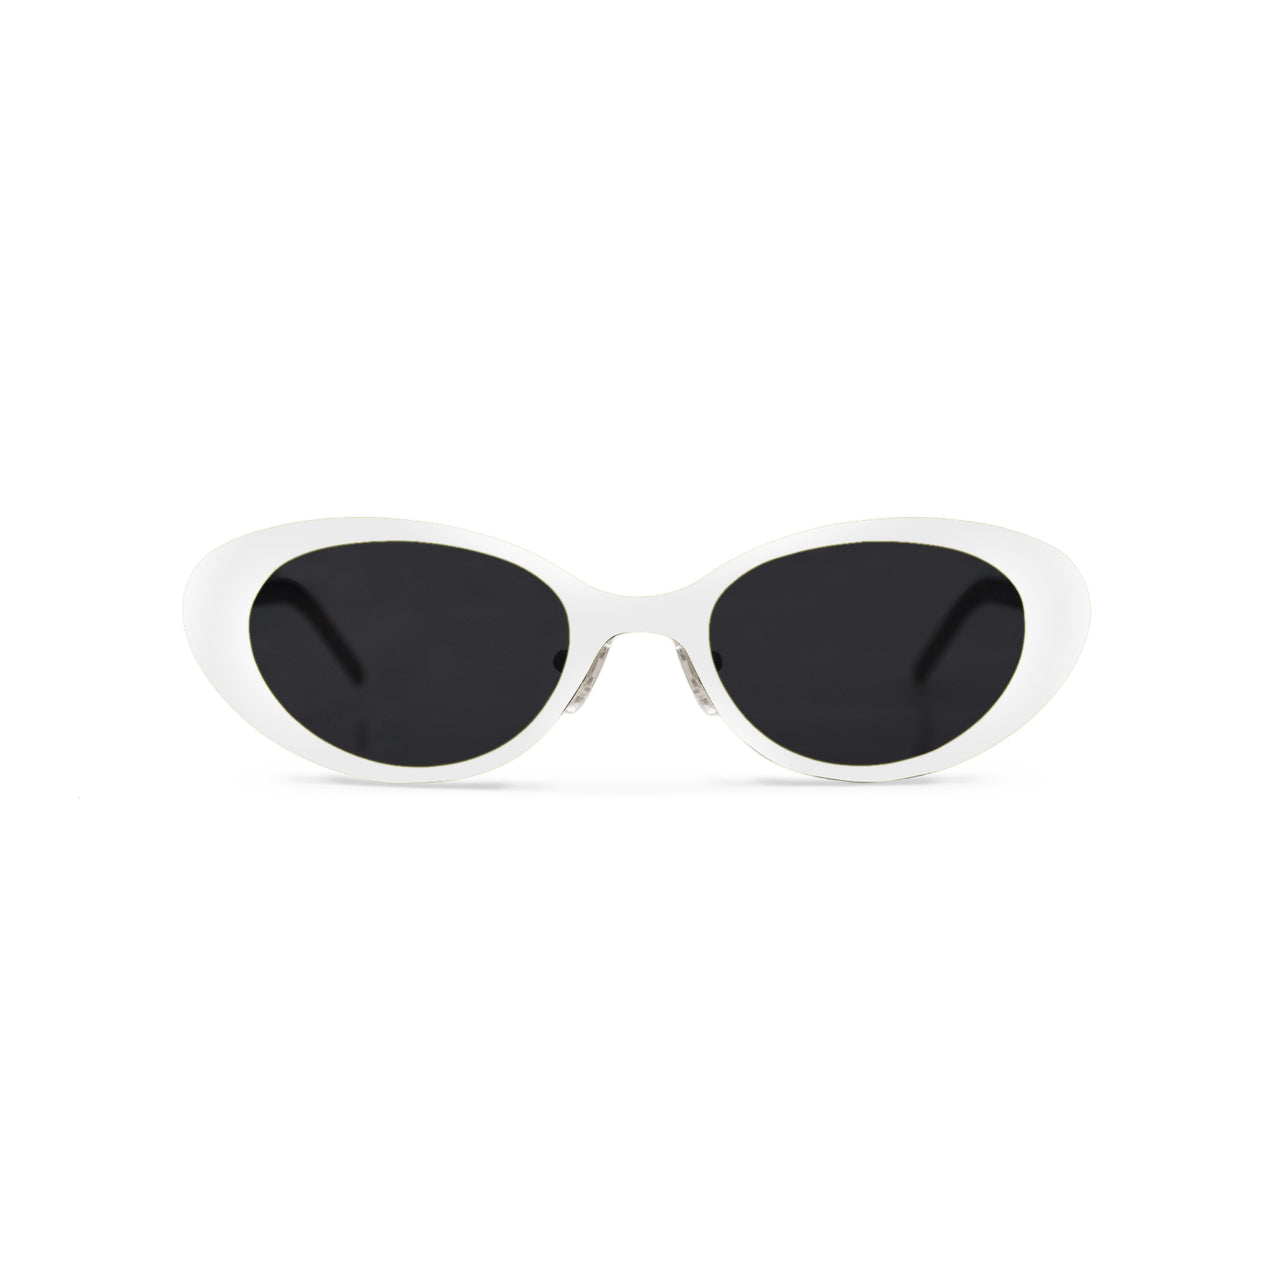 Metal. Porcelain. Black Lens. - BLYSZAK eyewear eyewear - eyewear, optical, sunglasses